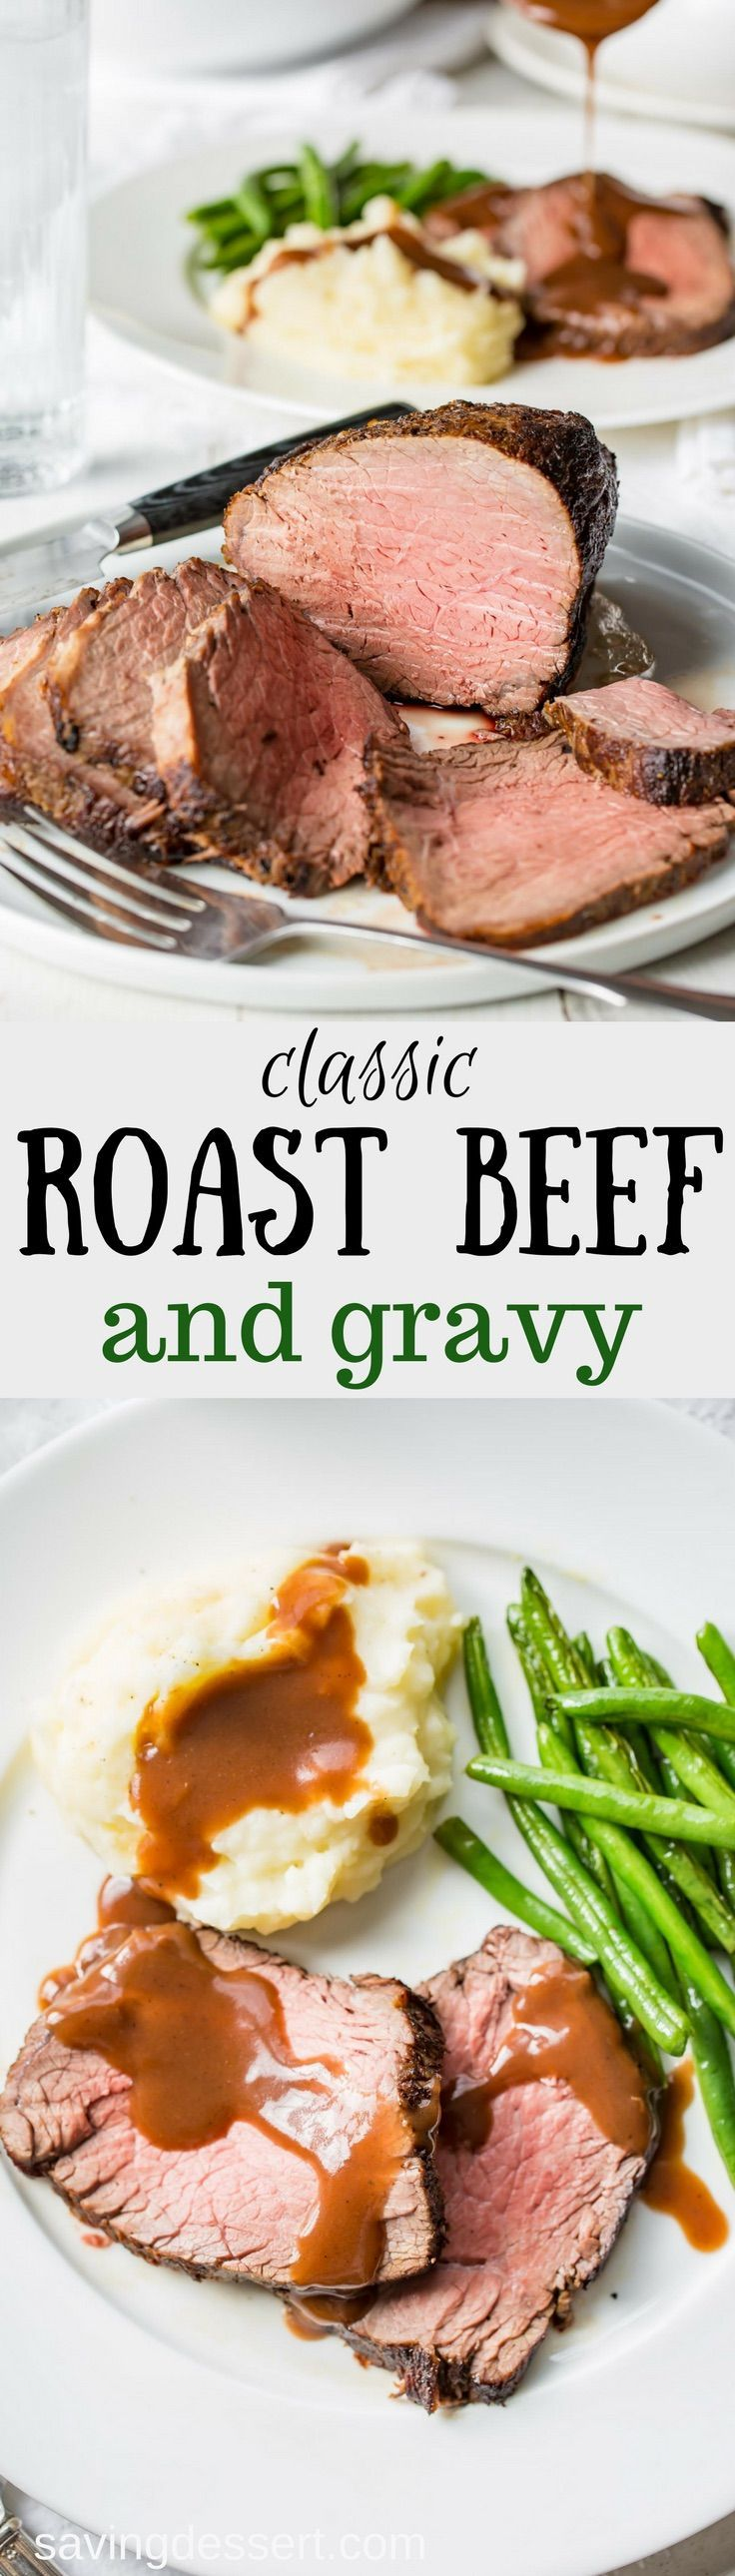 Classic Roast Beef and Gravy - well seasoned and slow cooked, this sirloin roast comes to the table tender and juicy and served with a rich red wine gravy. www.savingdessert.com #savingroomfordessert #roastbeef #redwinegravy #mashedpotatoesandgravy #gravy #sirloinroast